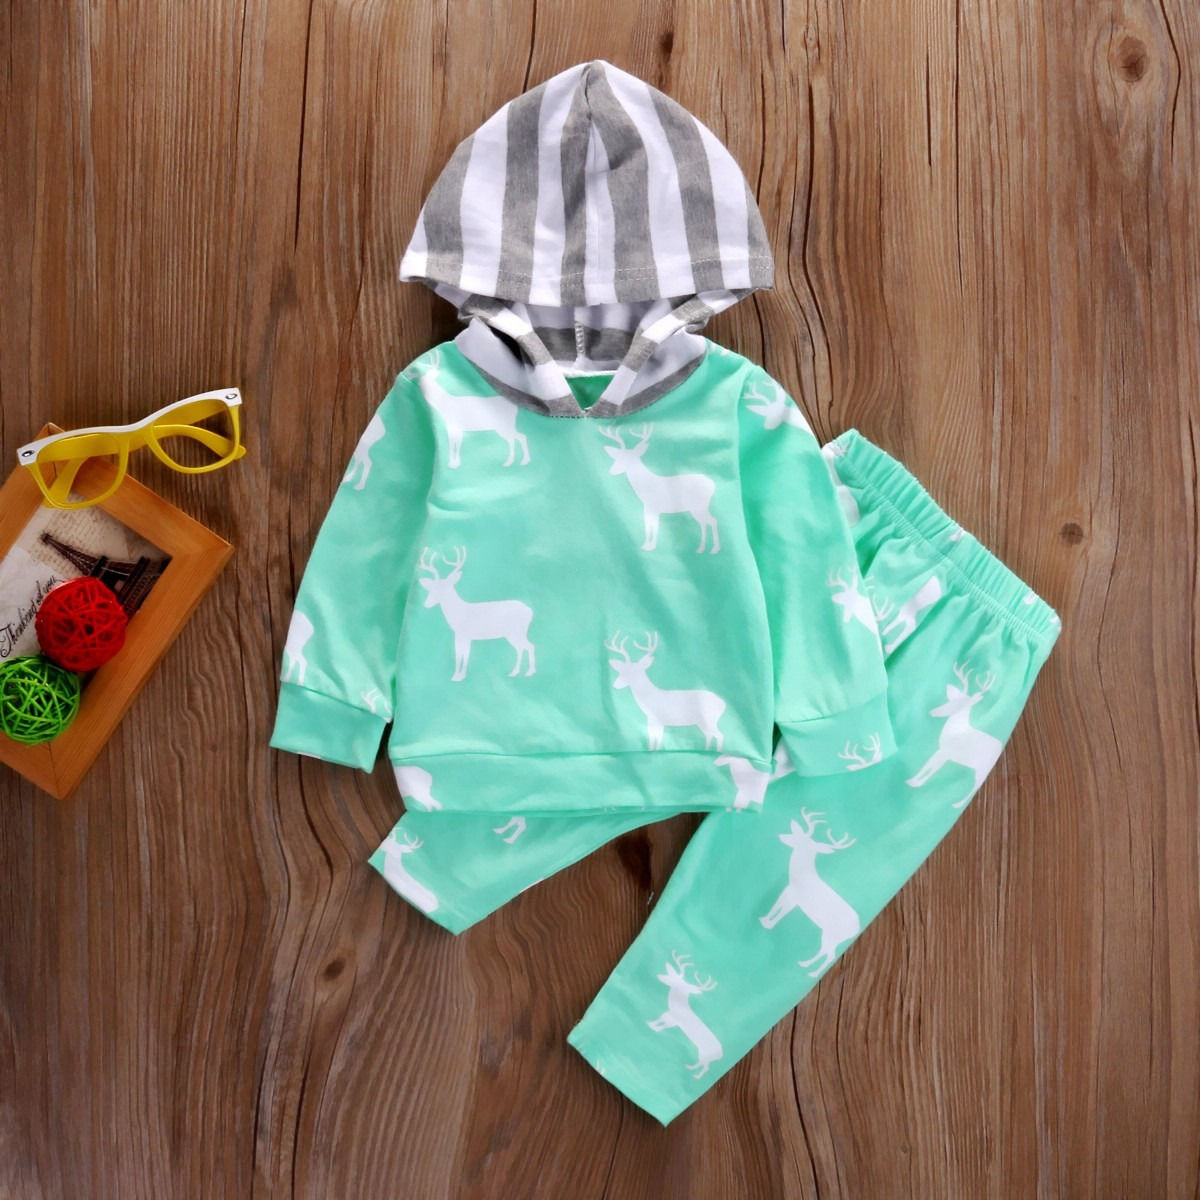 Newborn Baby Boys Girls Deer Hooded Tops Coat Pants Casual Cotton Green 2PCS Outfits Set Baby Boy Clothes 0-24M infantil toddler newborn baby girls boy unisex hoodie coat tops floral pants 2pcs outfits set clothes